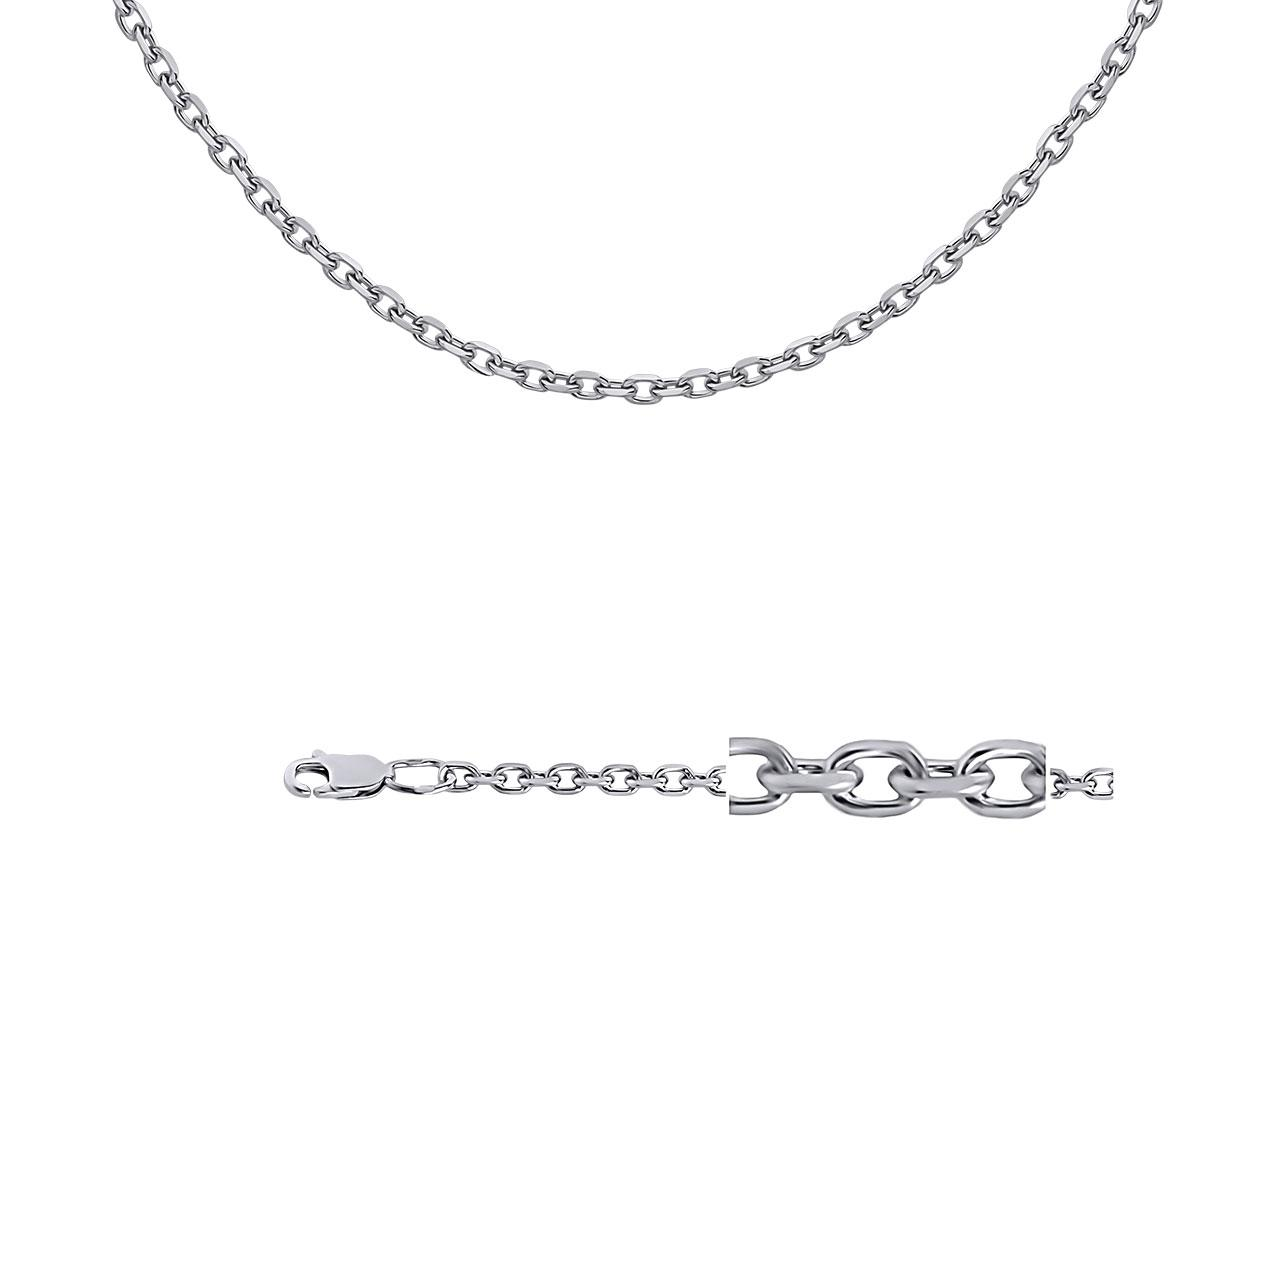 Cable-link Silver Chain (0.8mm Solid Wire)